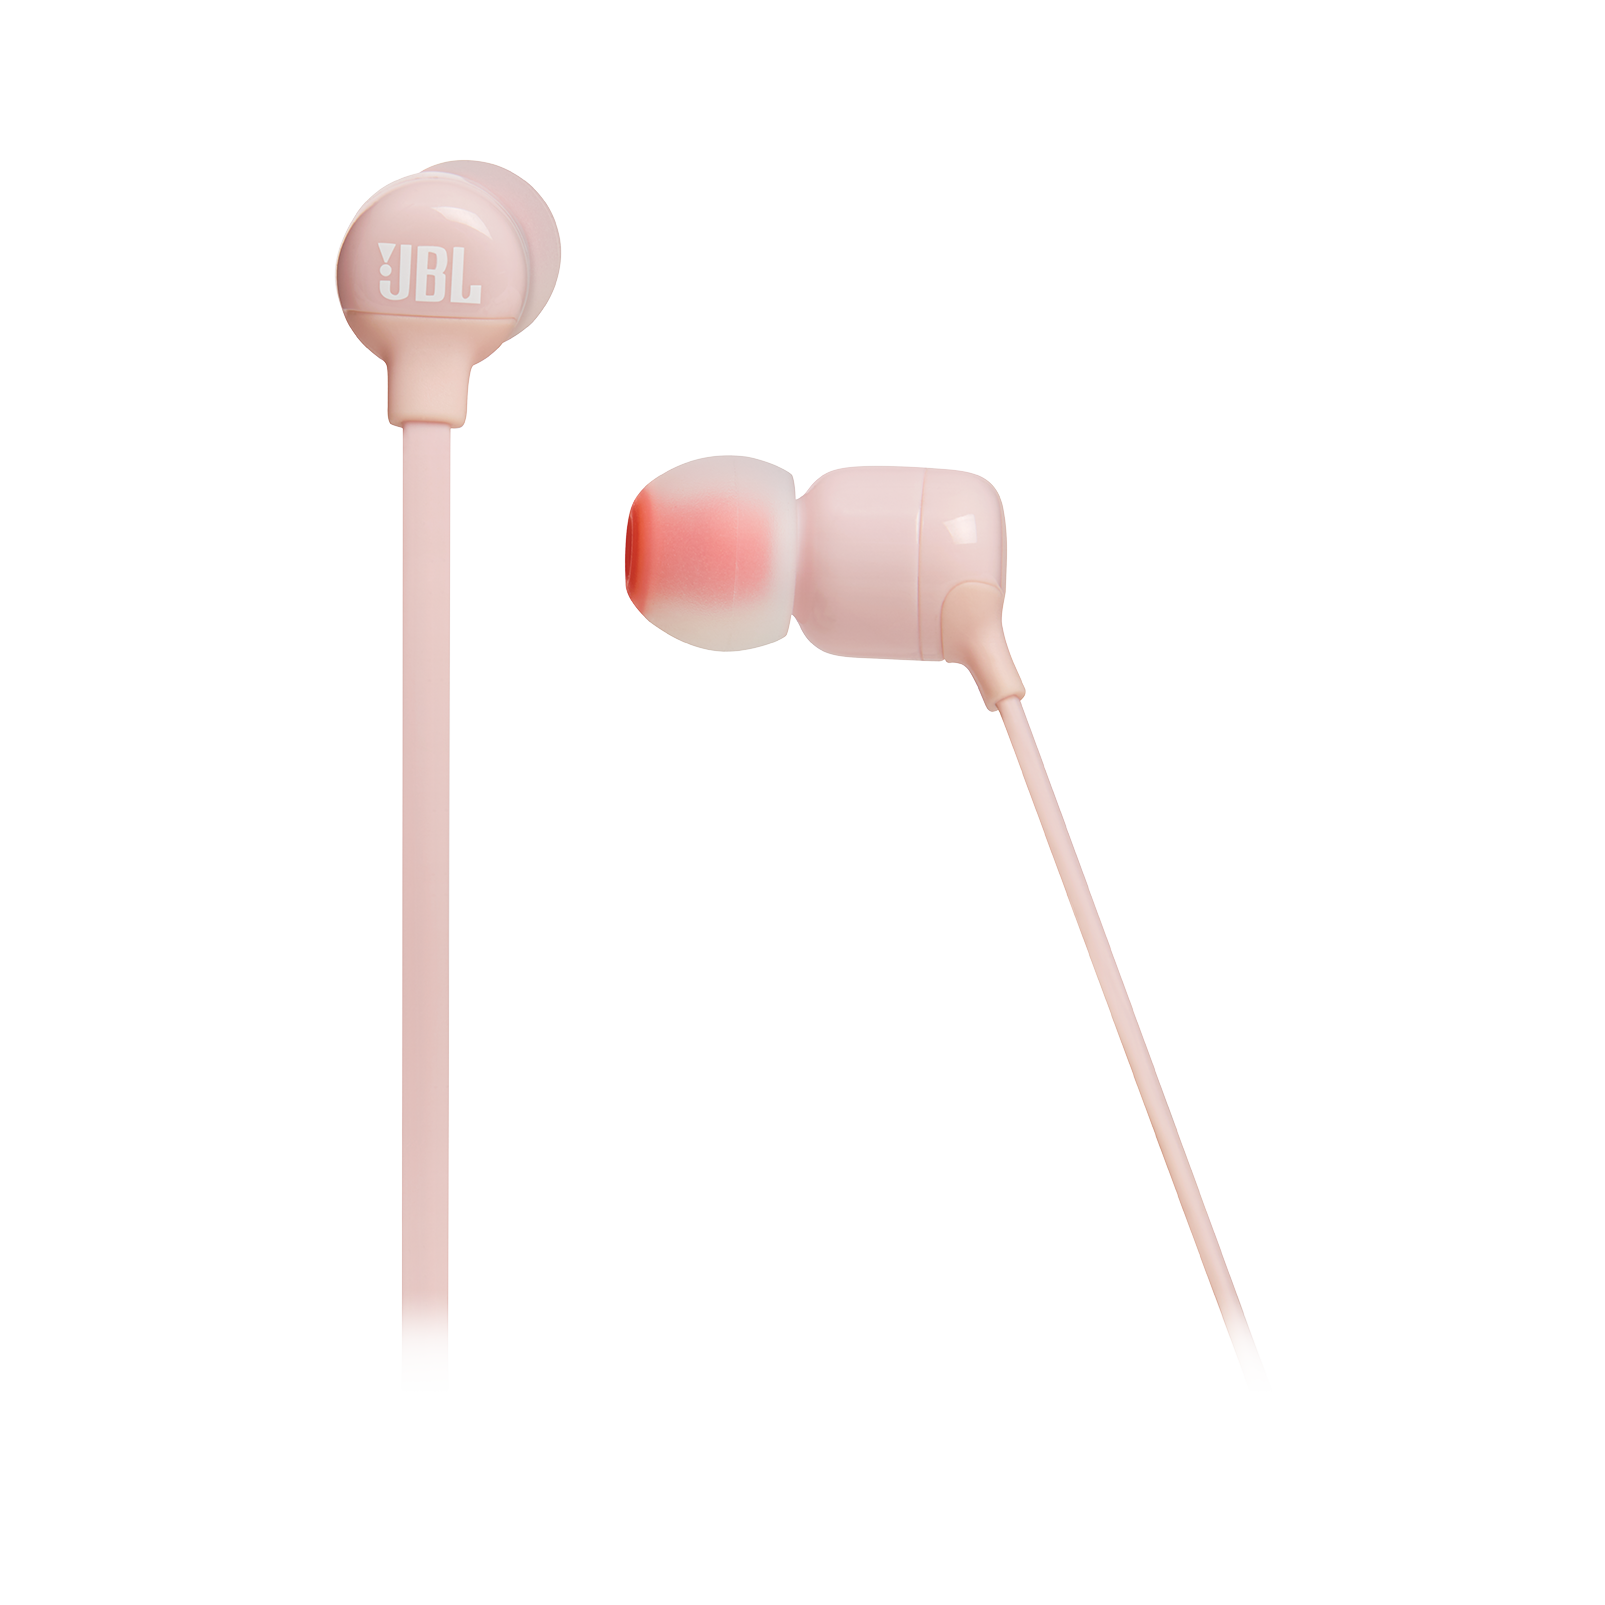 JBL TUNE 110BT - Pink - Wireless in-ear headphones - Front